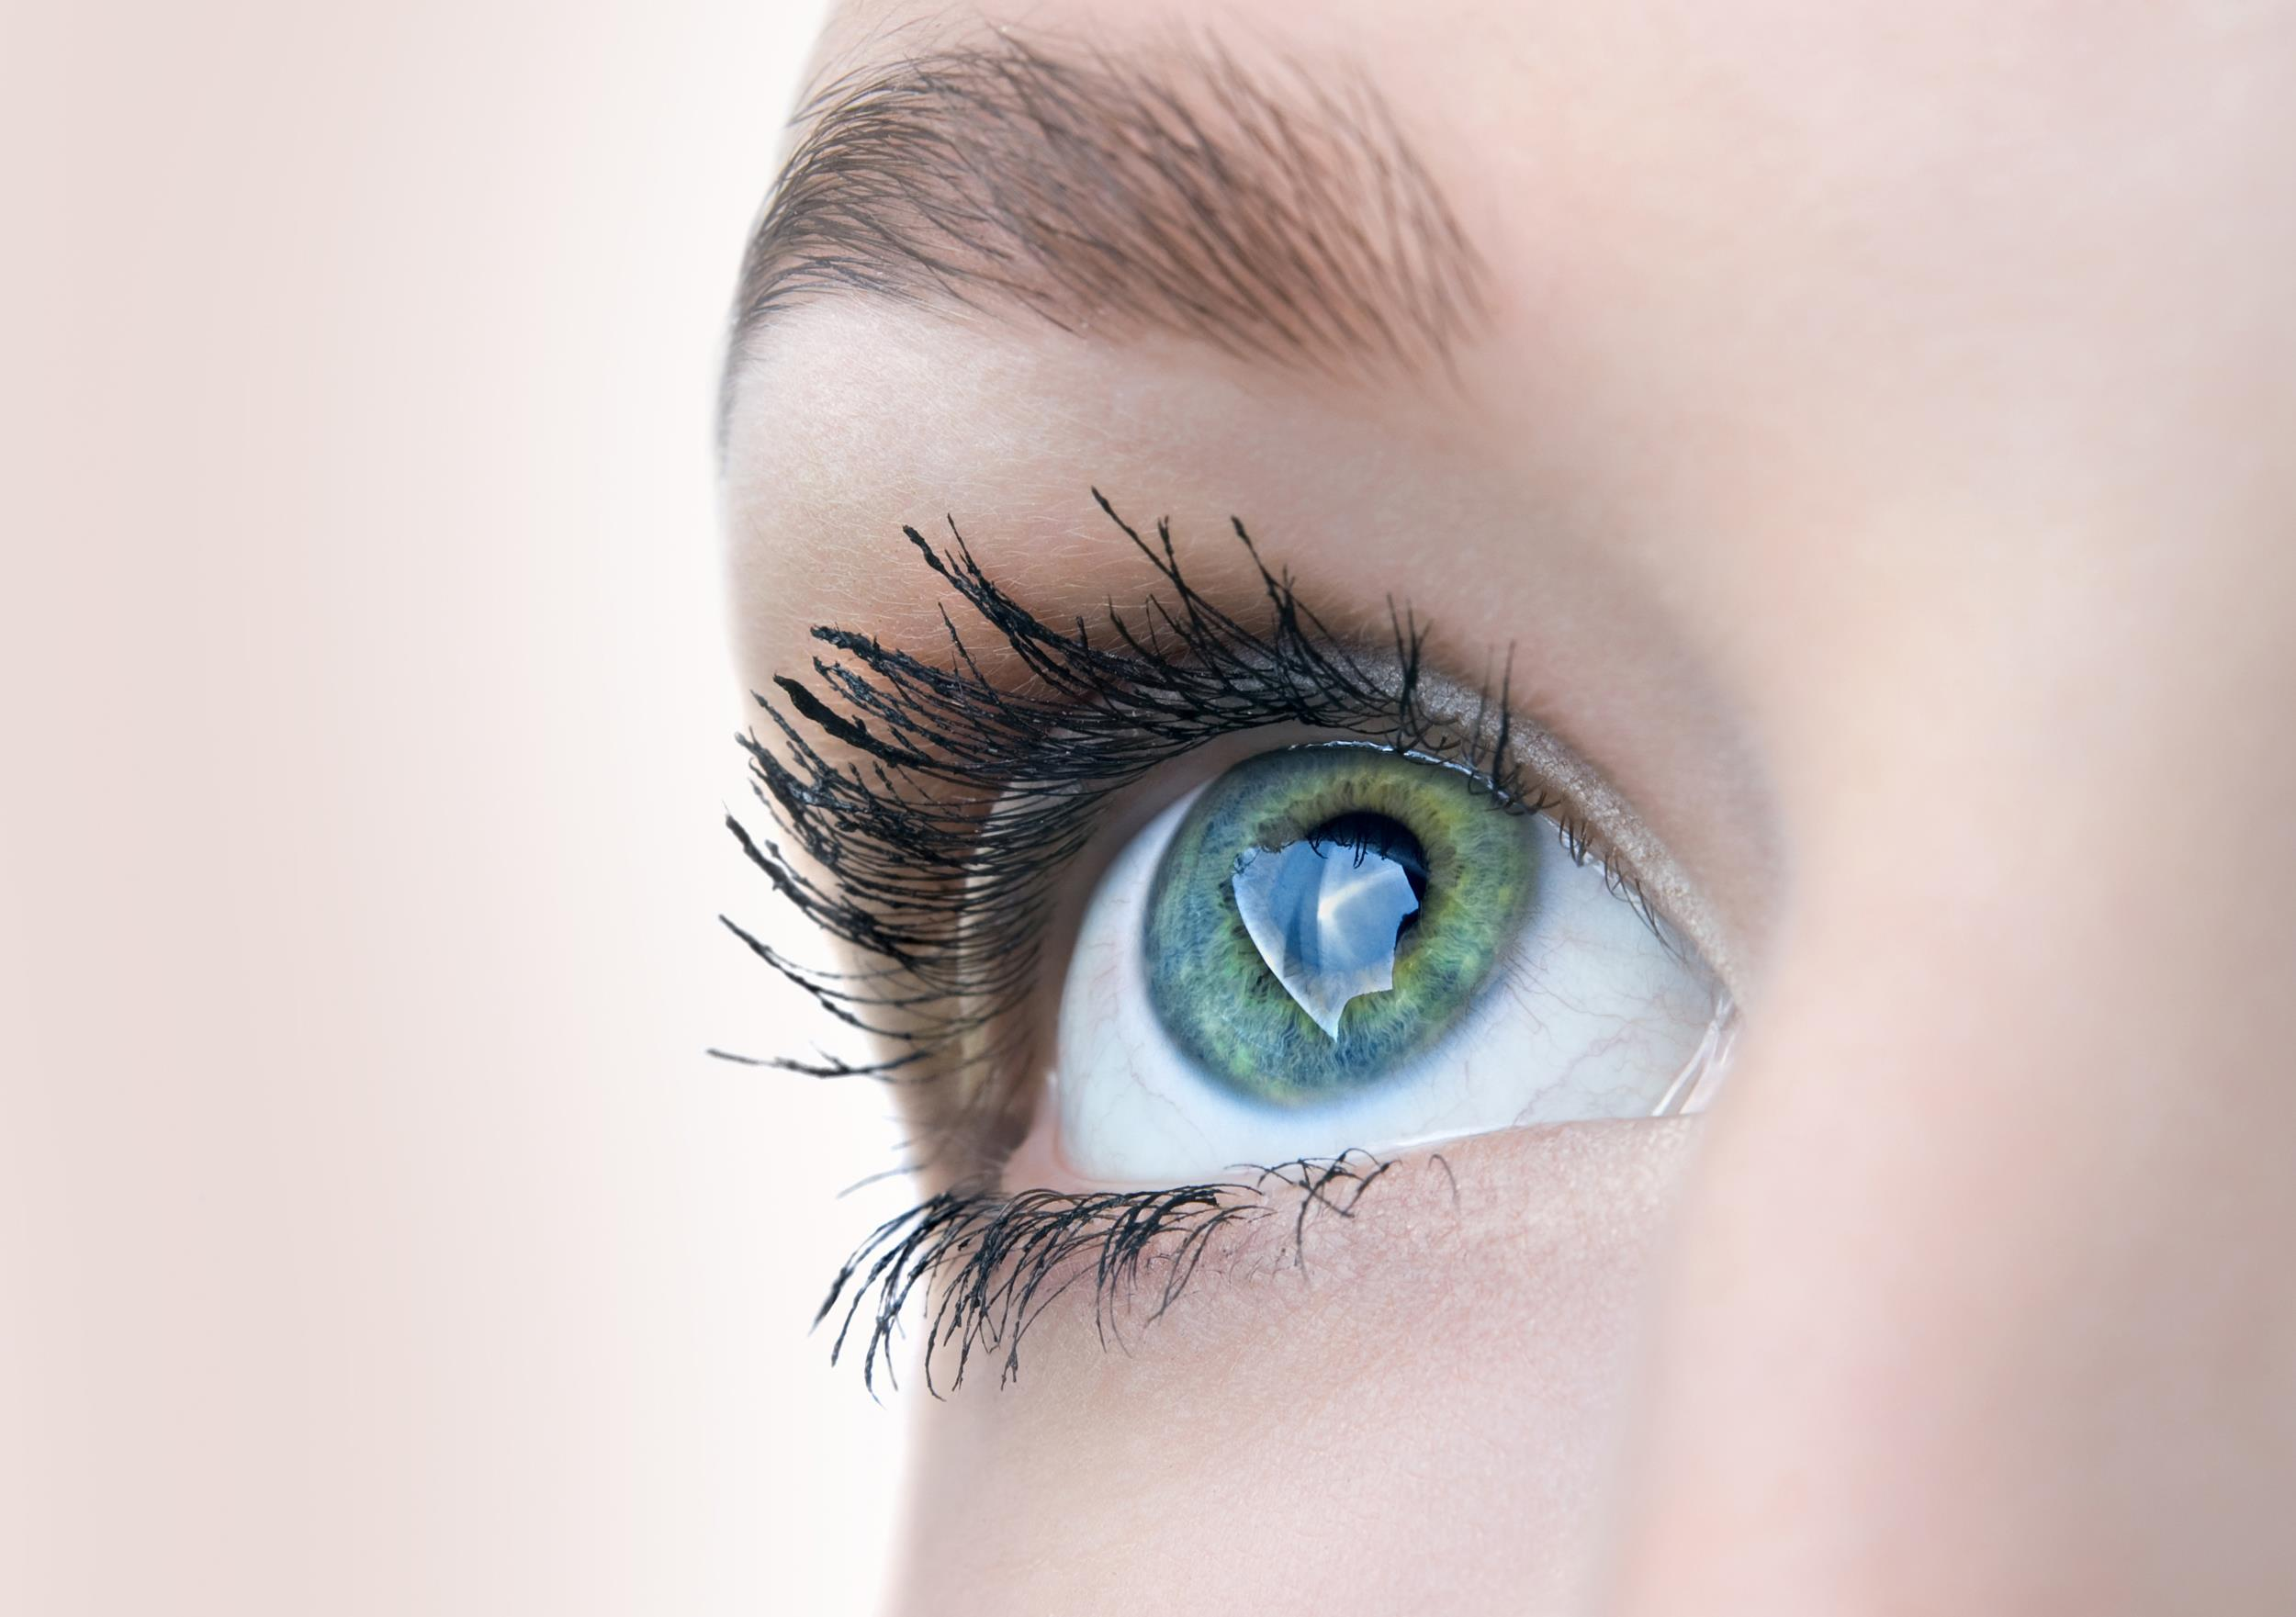 Whats The Best Length For Eyelashes Based On Science